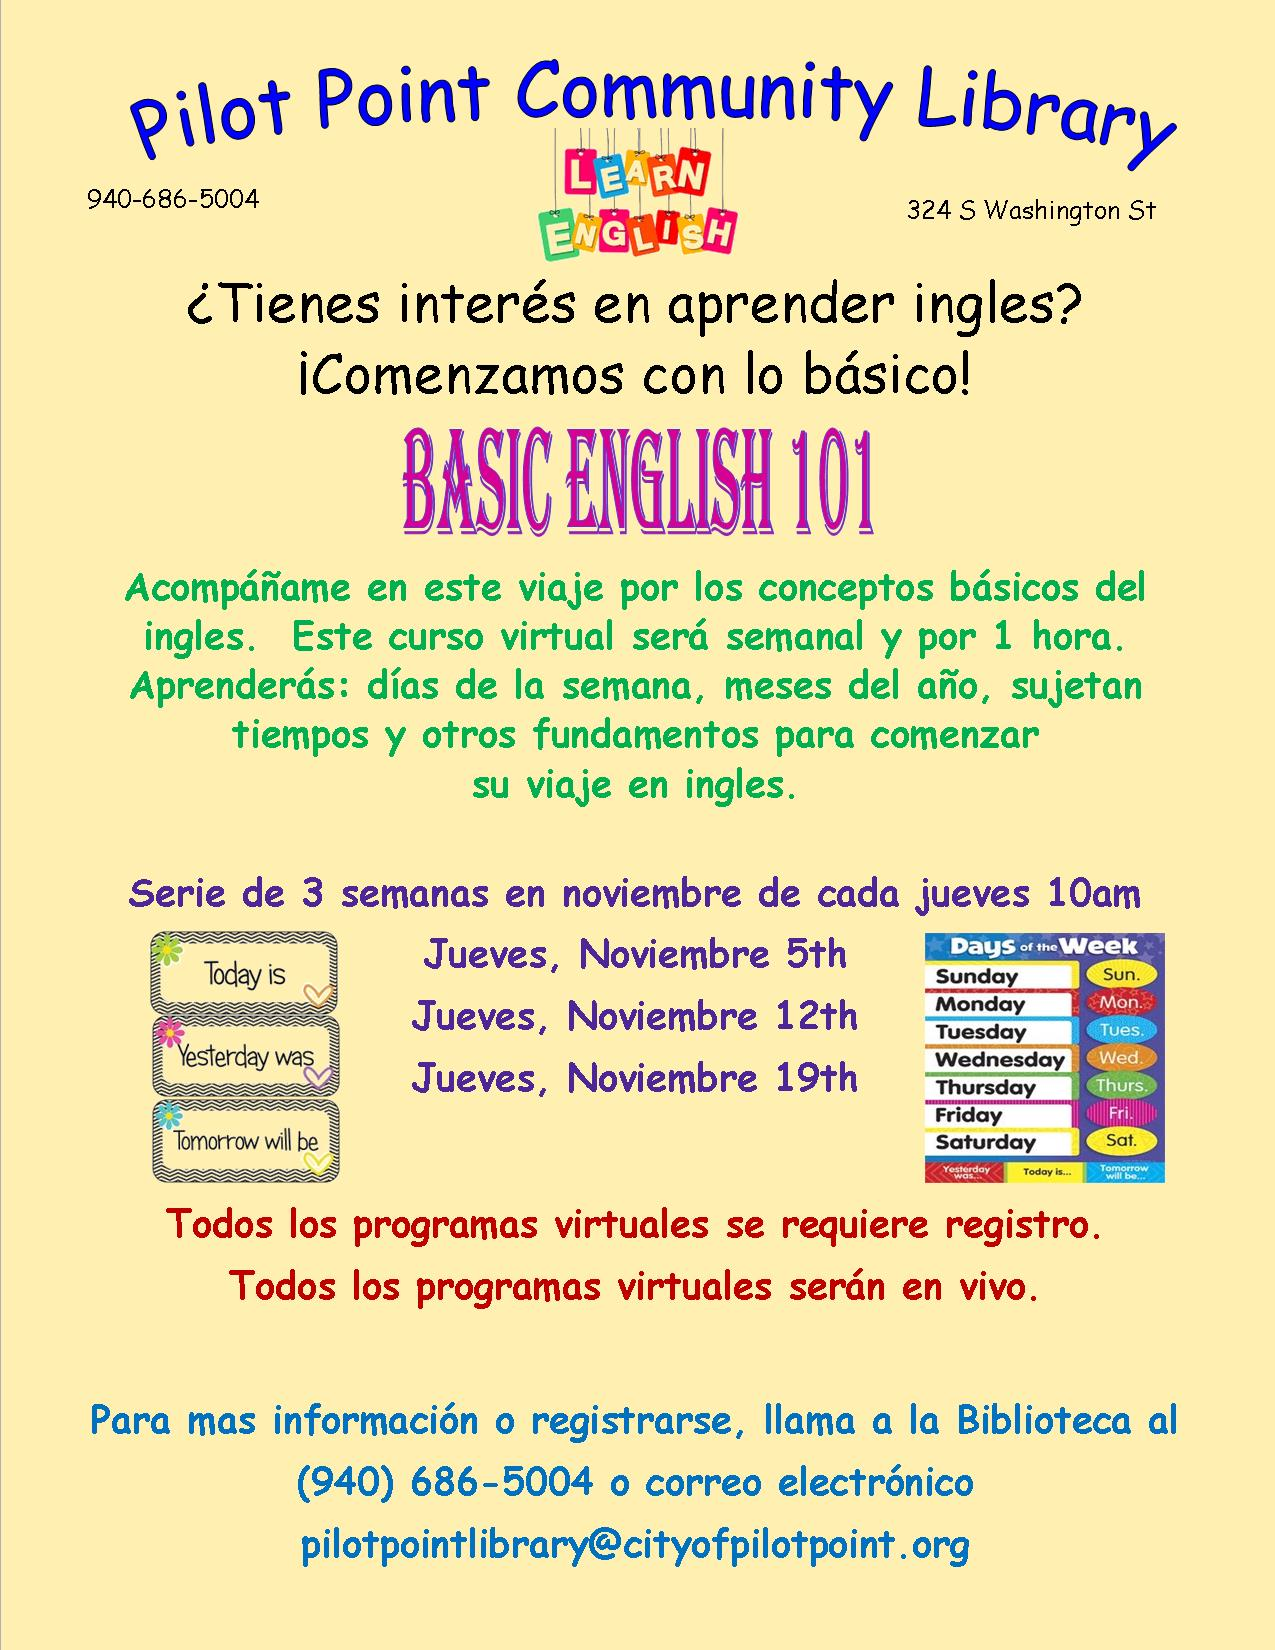 Spanish Baisc English flier